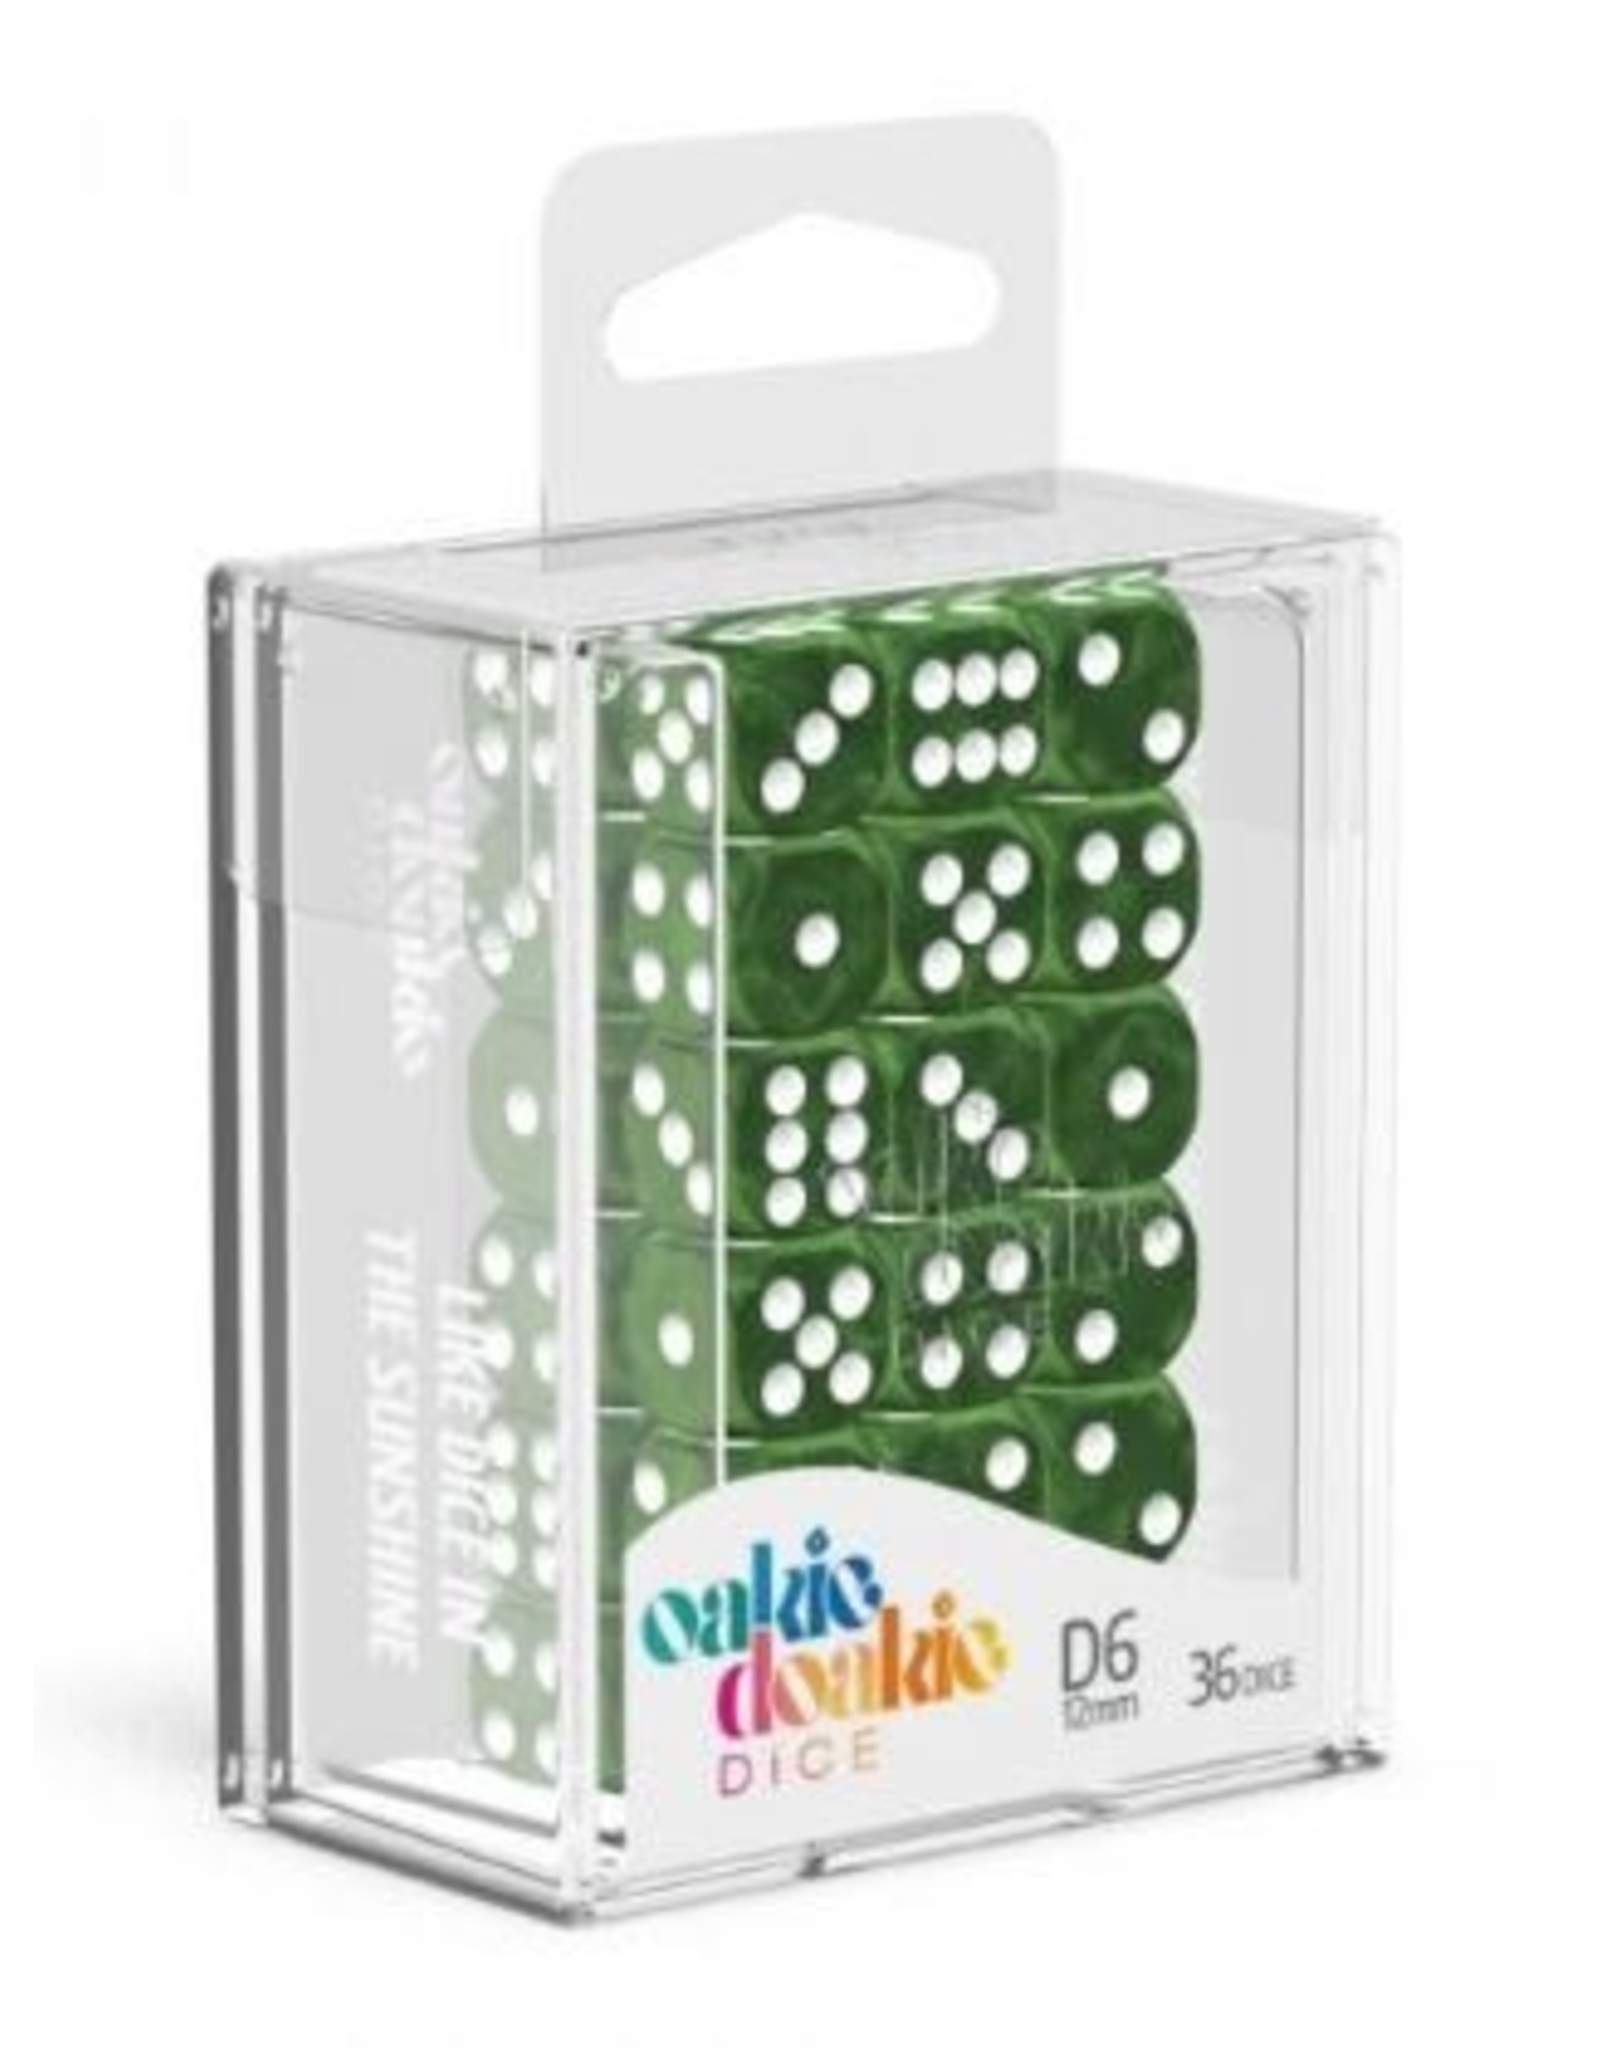 Oakie Doakie Dice D6 12mm Marble Green Kingslayer Games